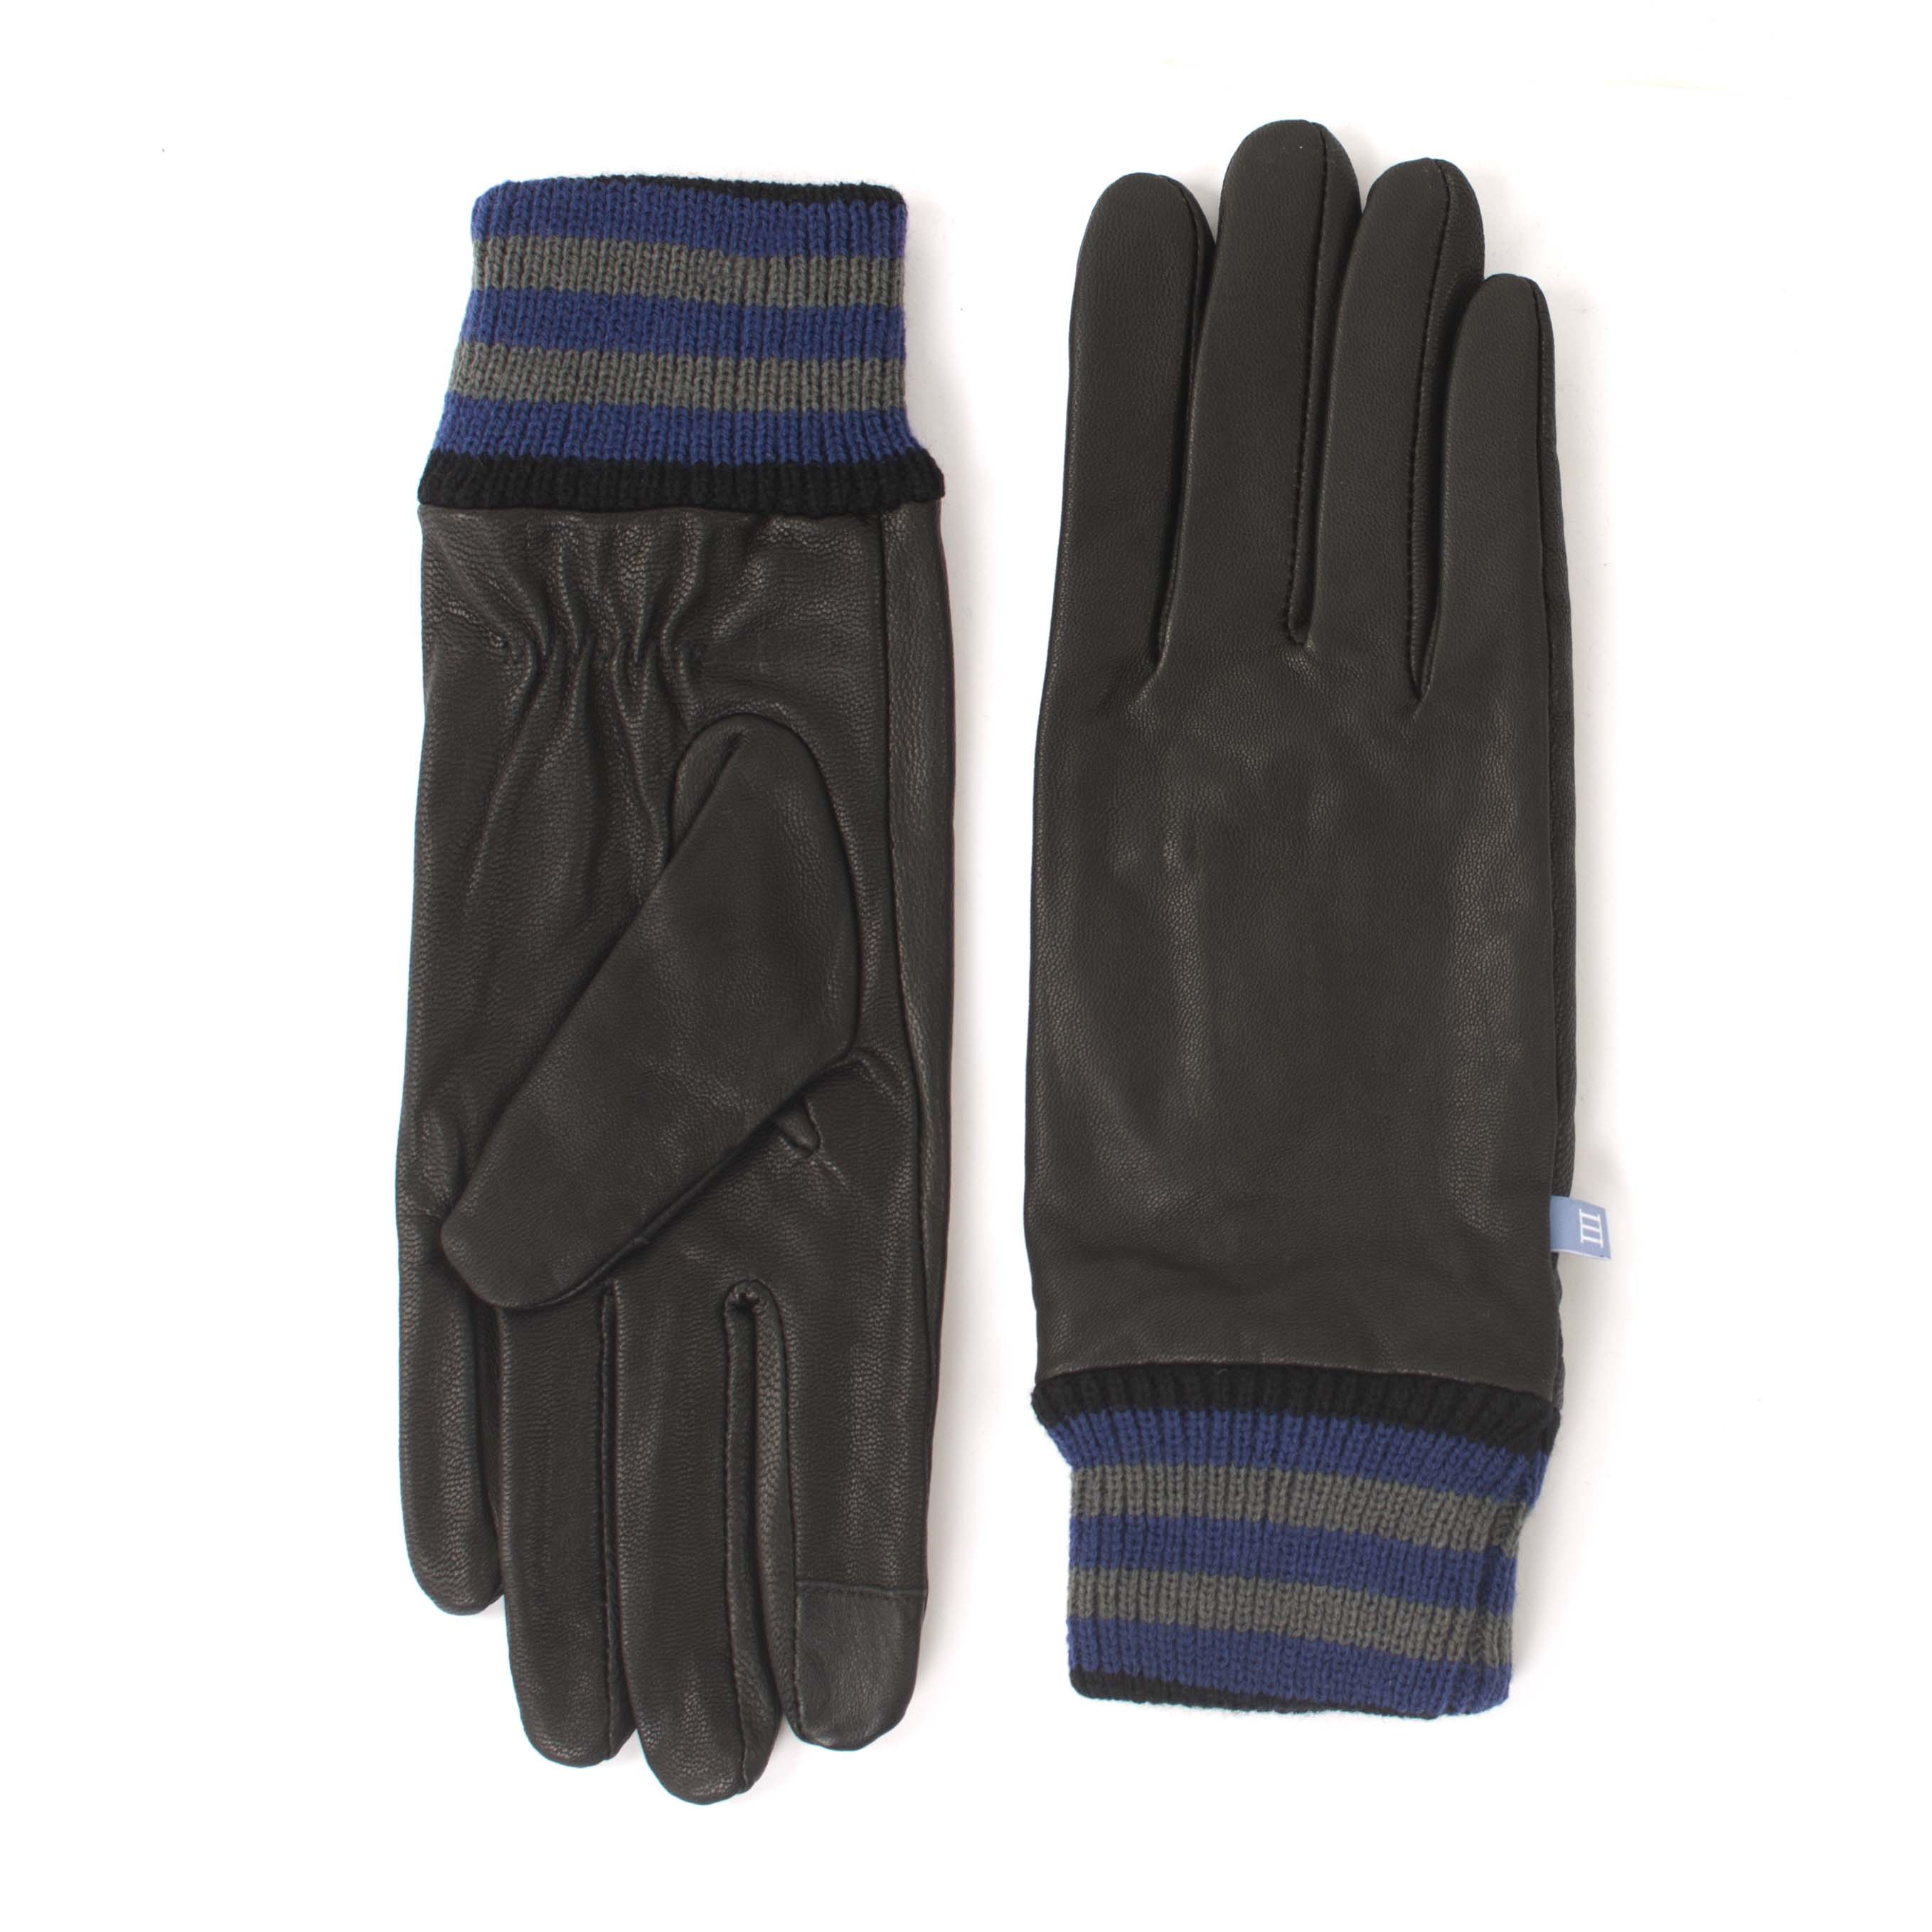 Gloves black with striped cuff and touchscreen fingertips